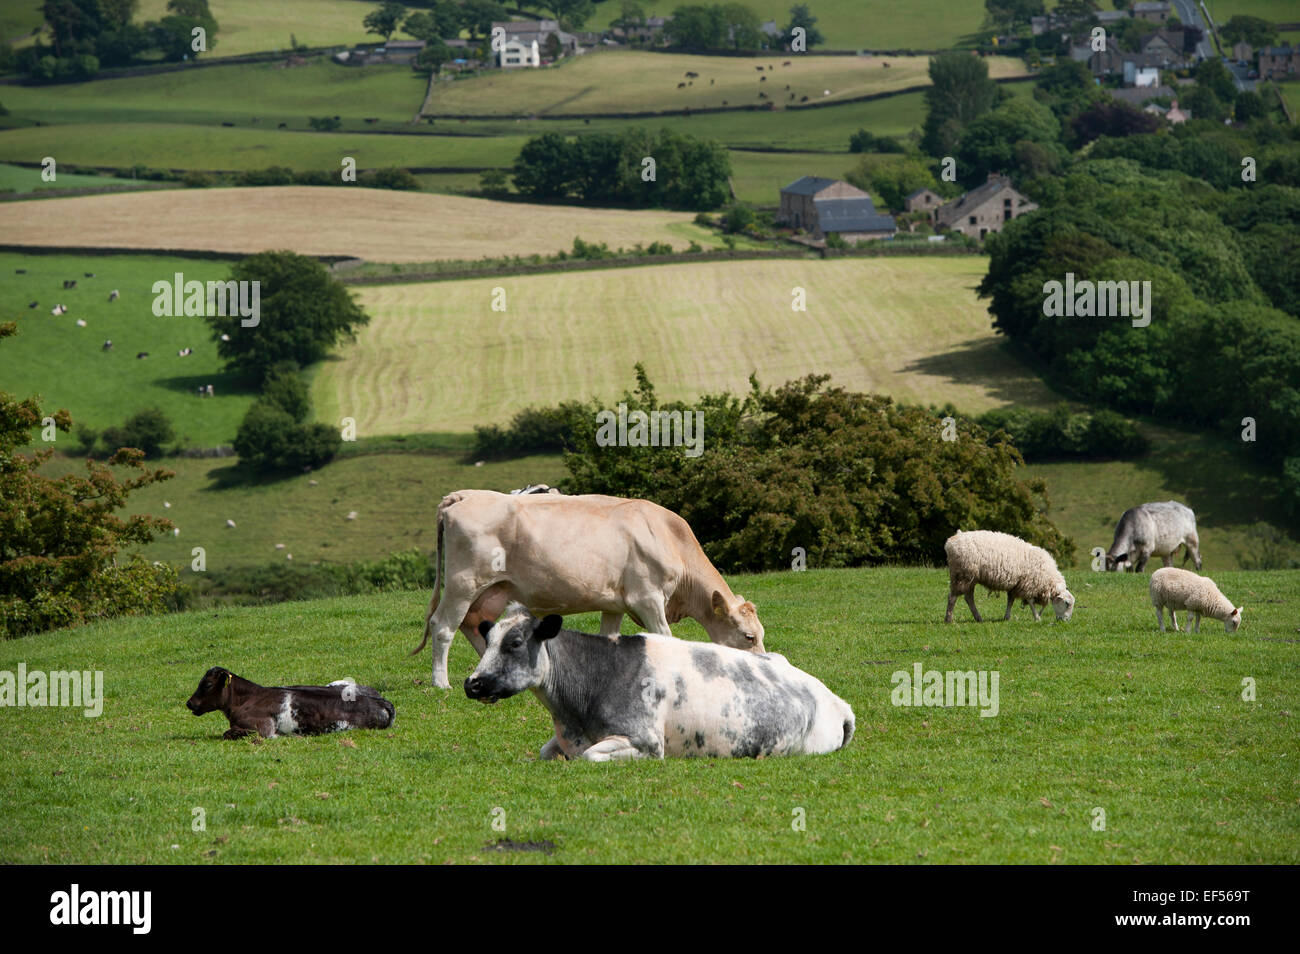 Sheep and beef cattle grazing together in uplnad pasture, Lancashire, UK. - Stock Image